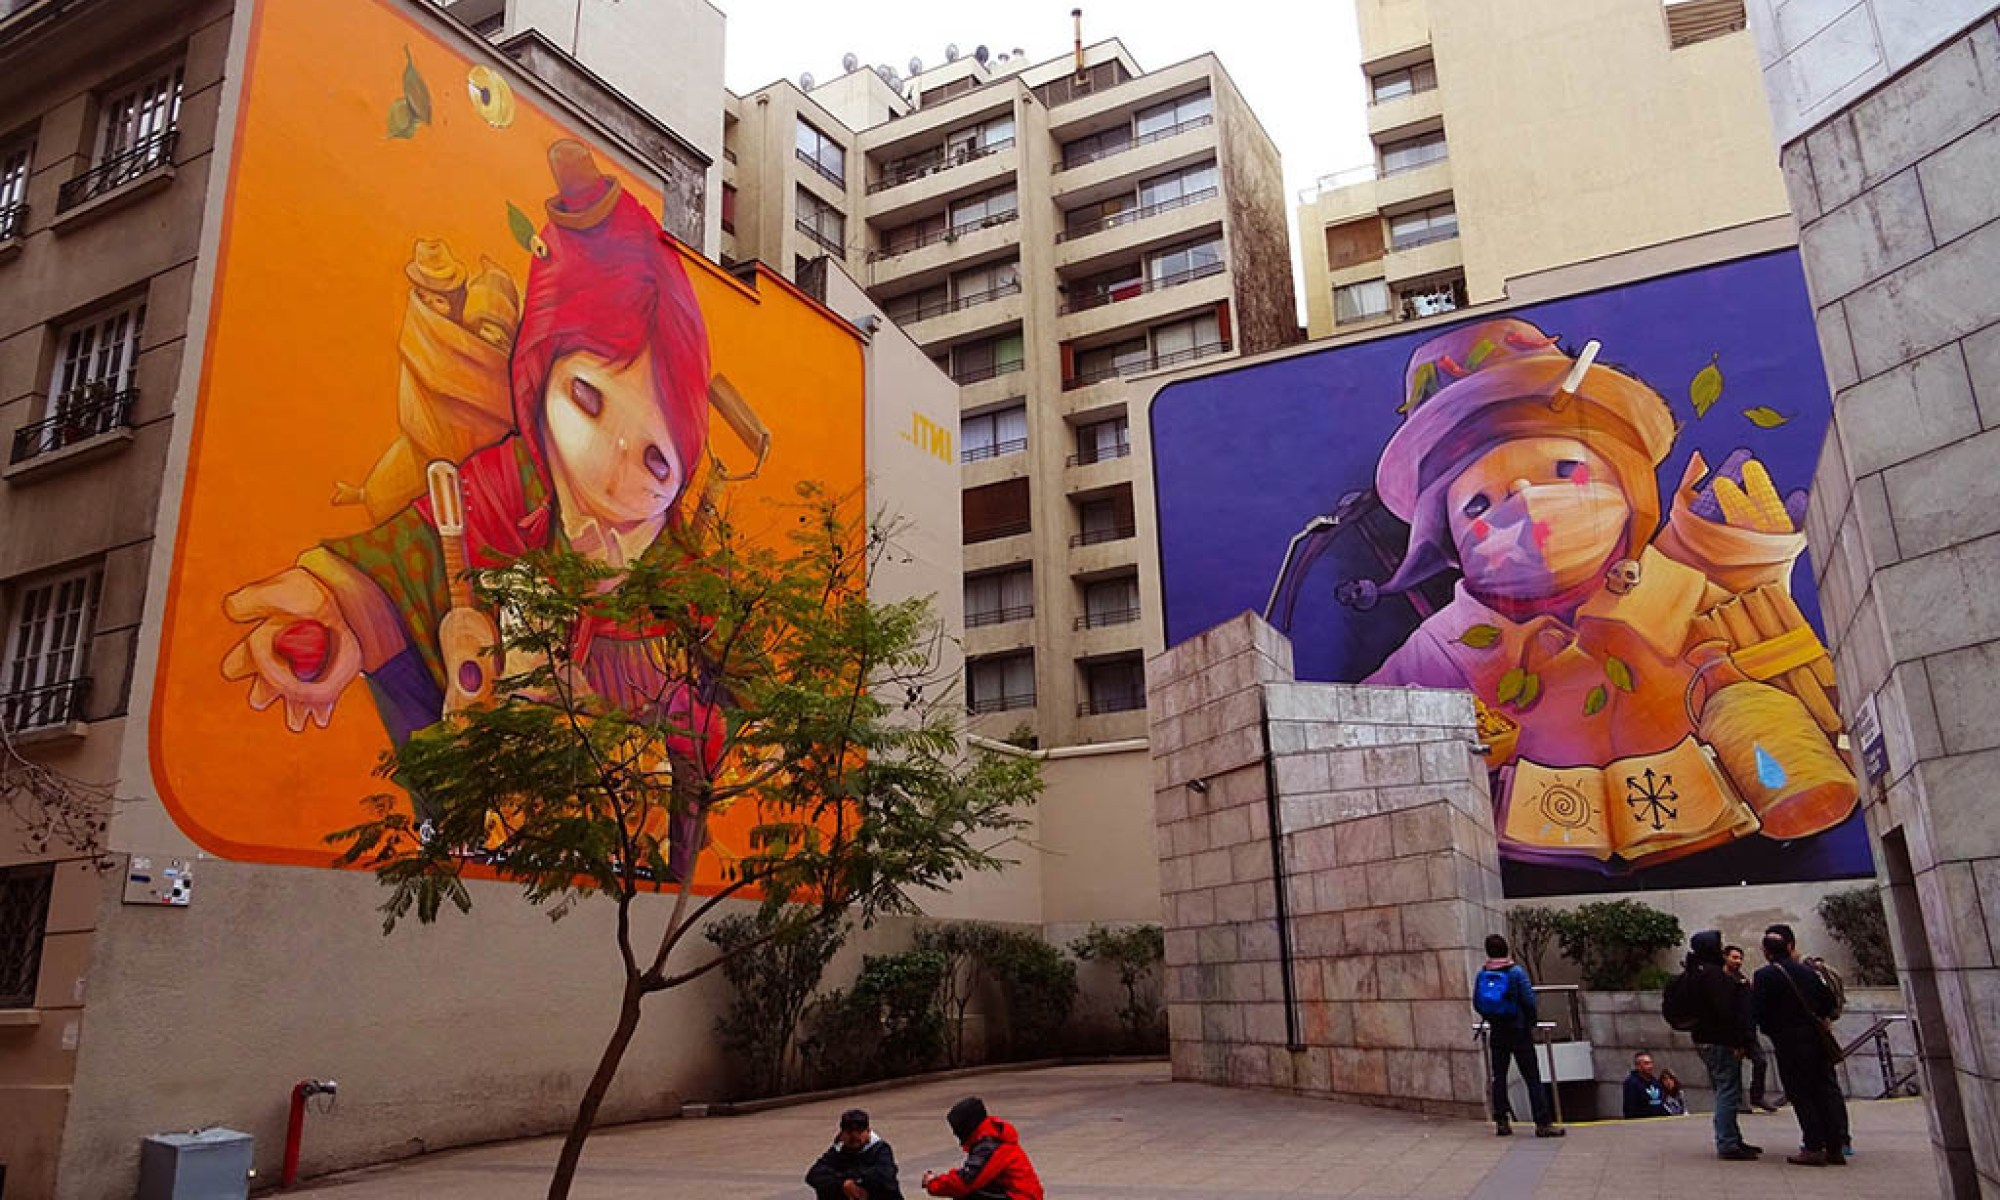 Two giant street murals by the Chilean artist Inti in central Santiago